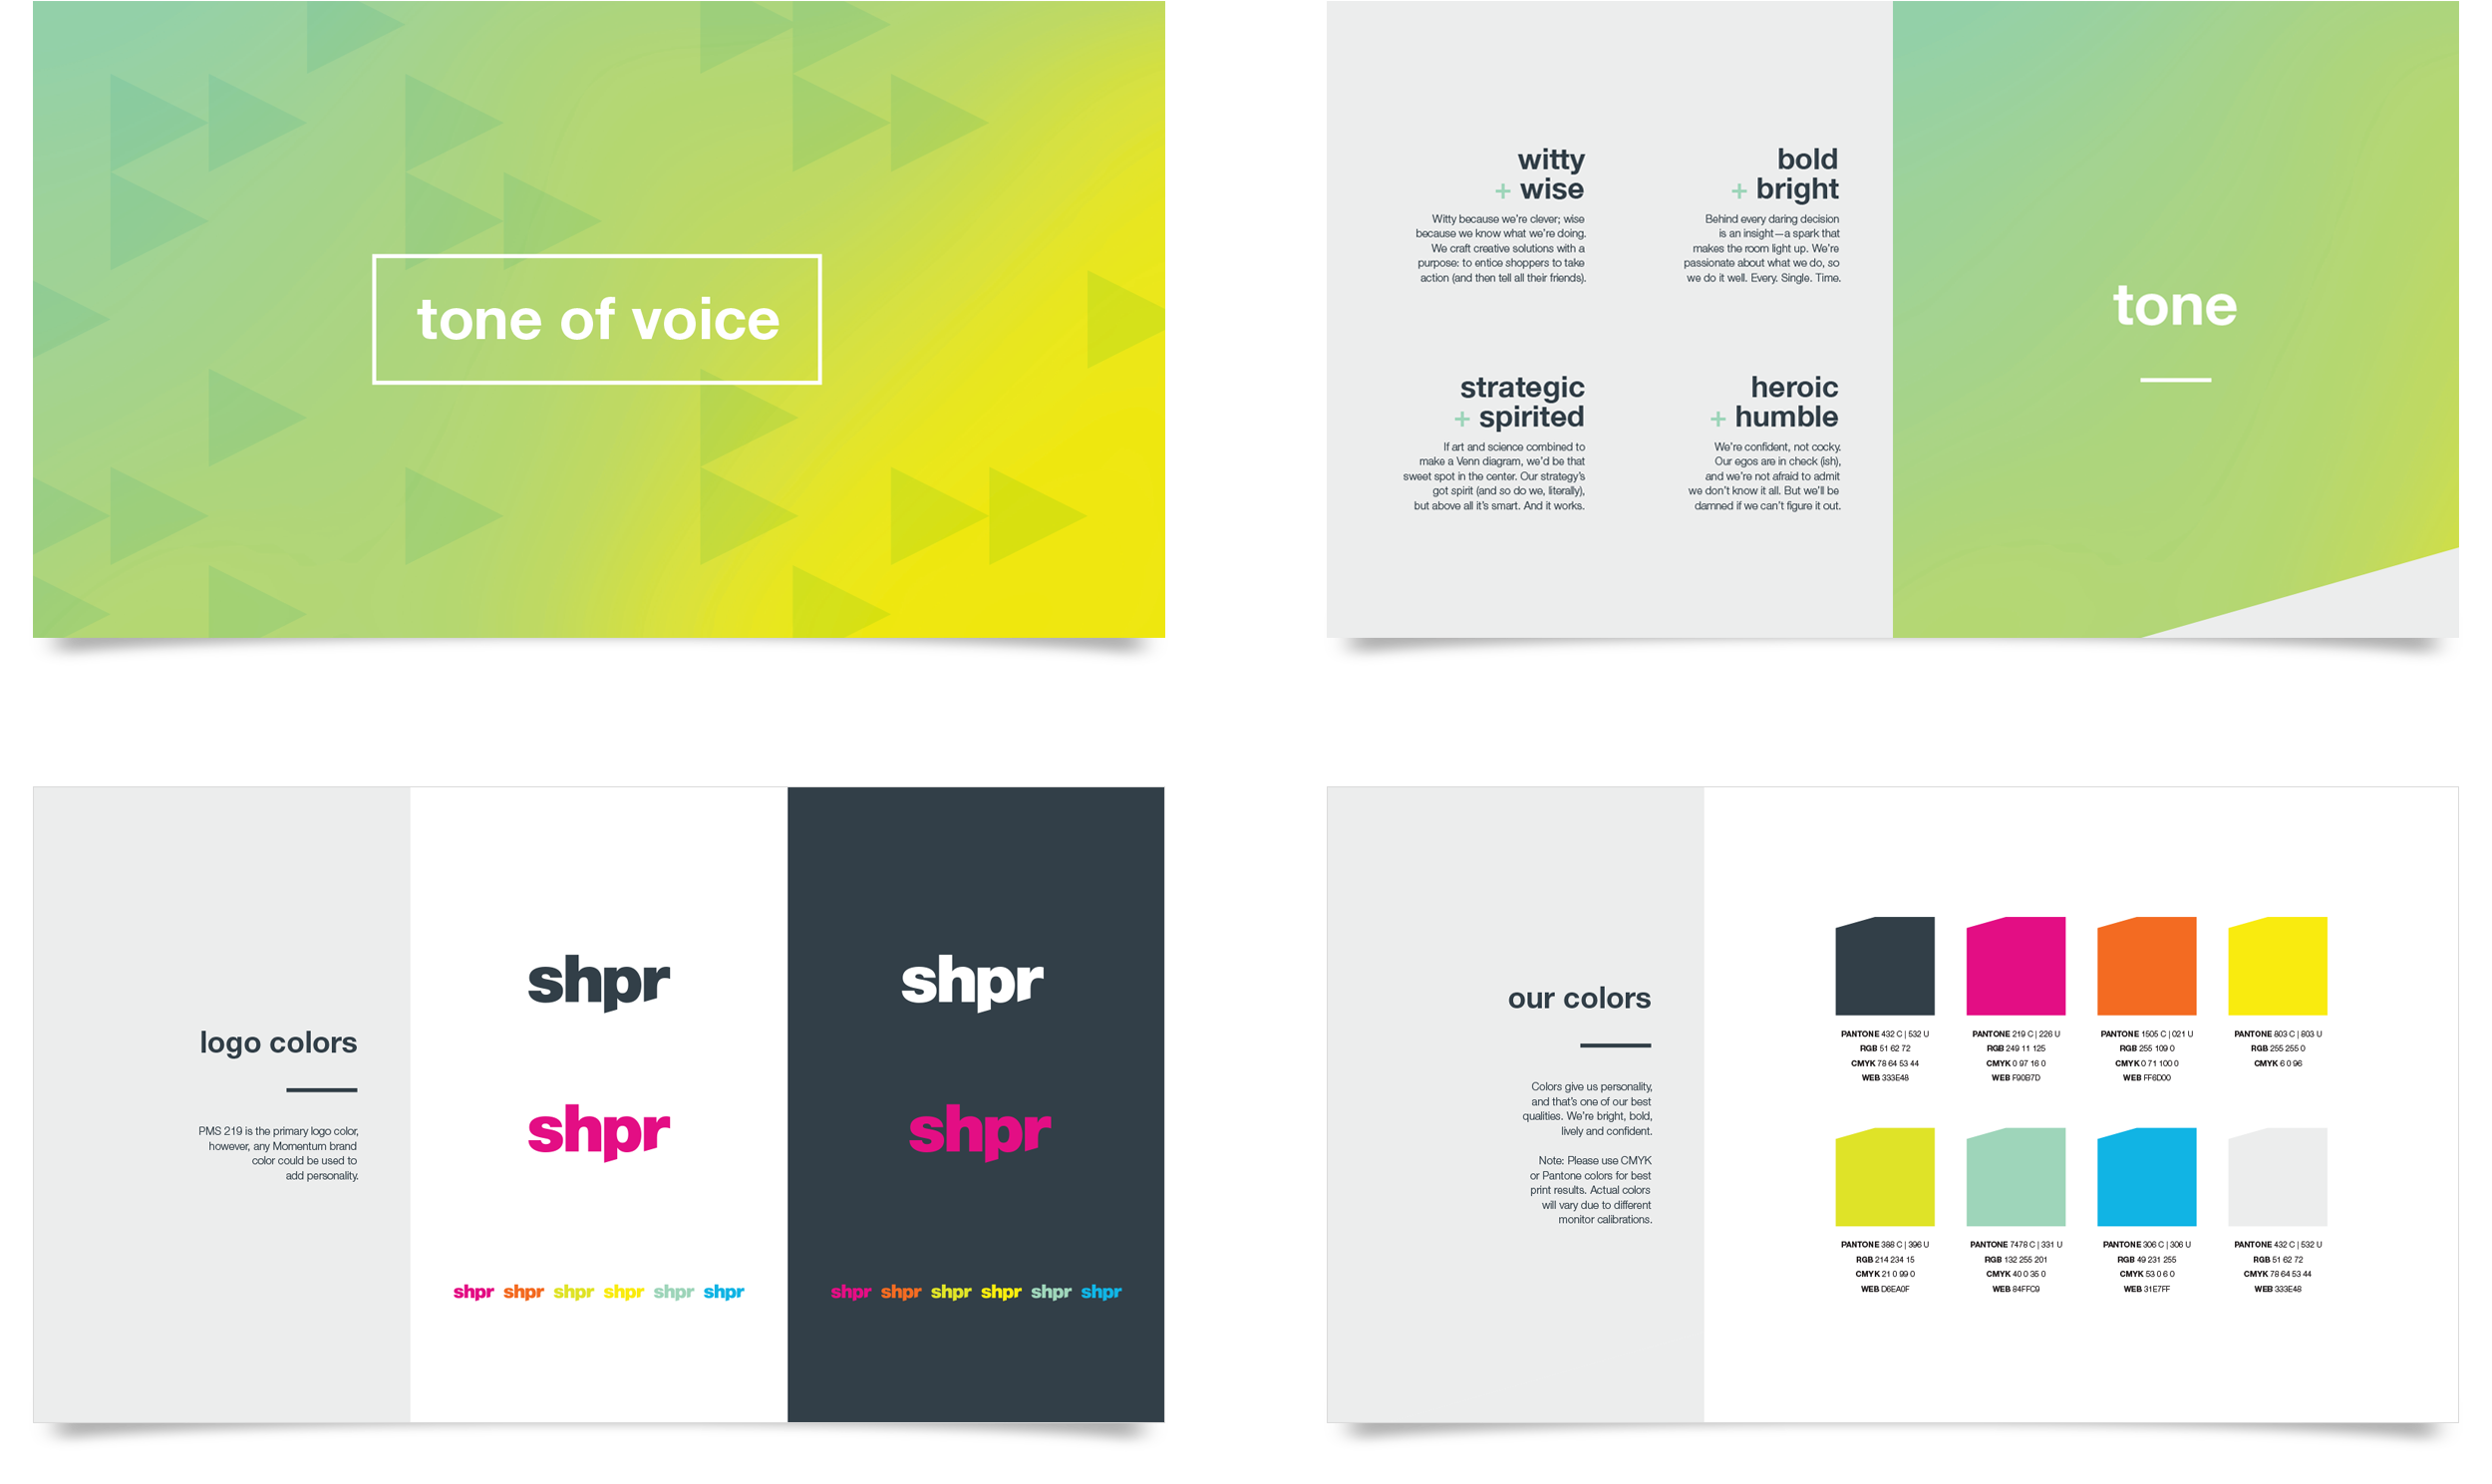 A few pages from the brand guidelines